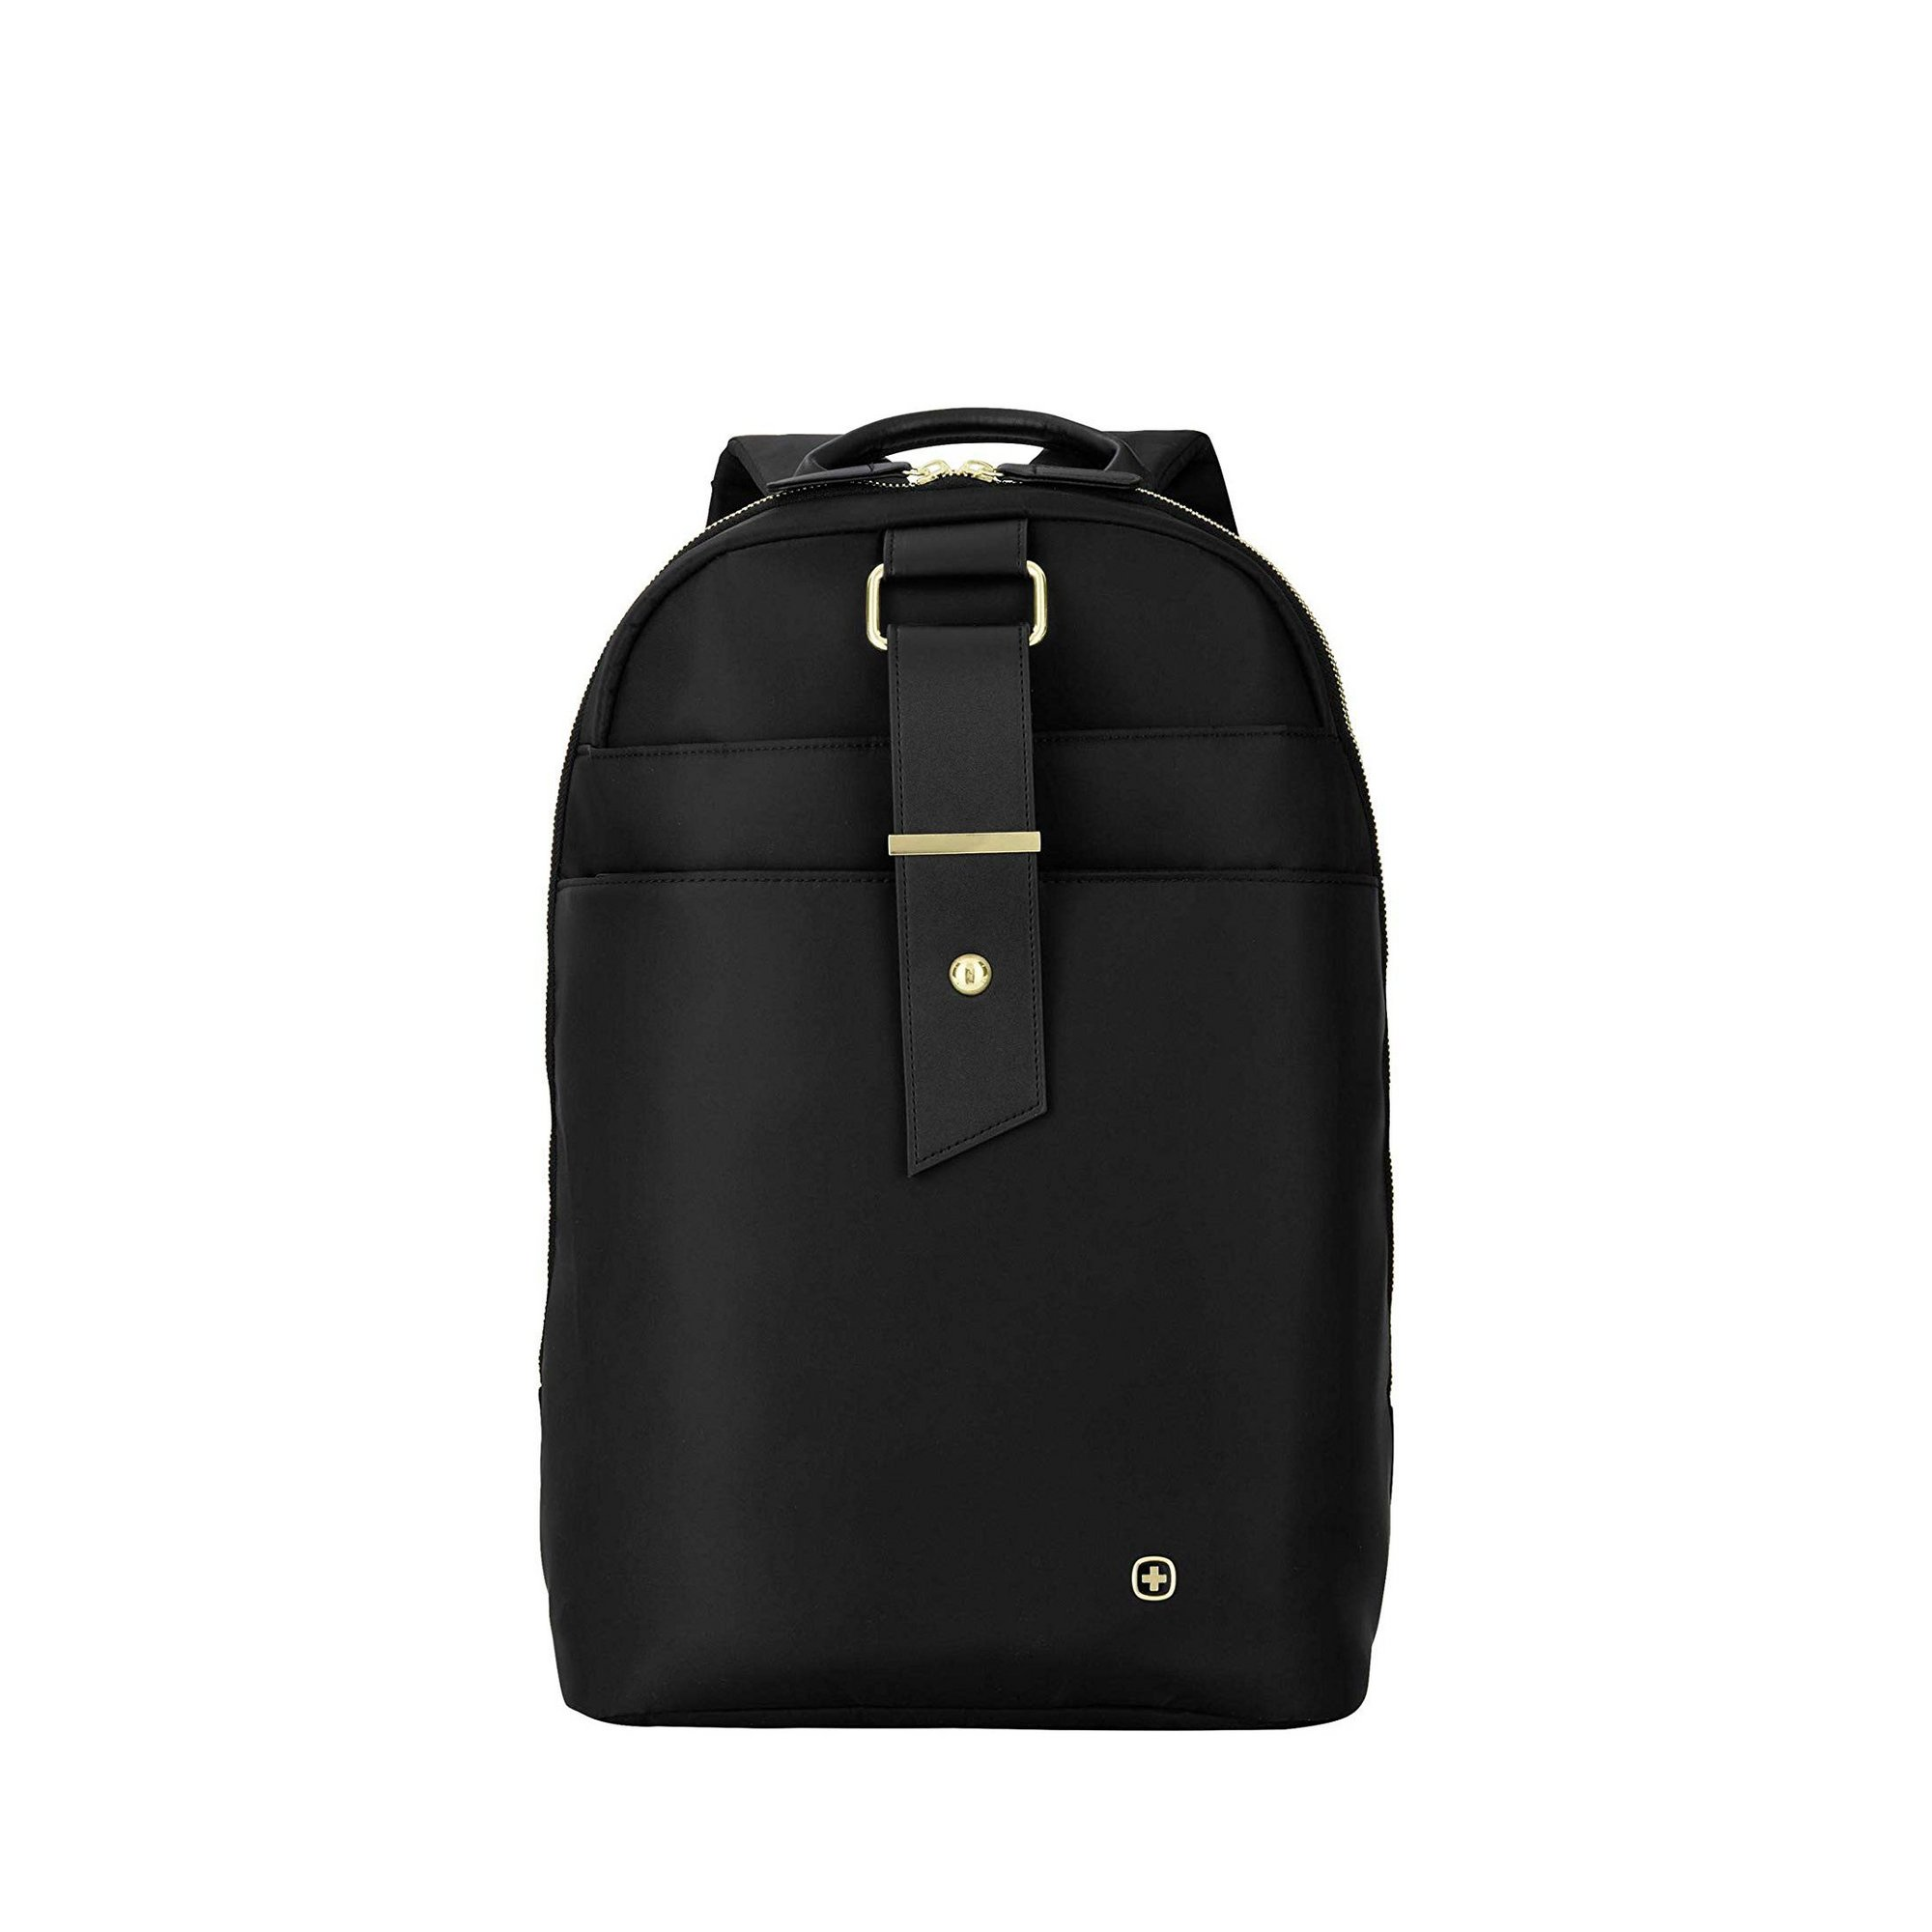 Image of Wenger Alexa Backpack